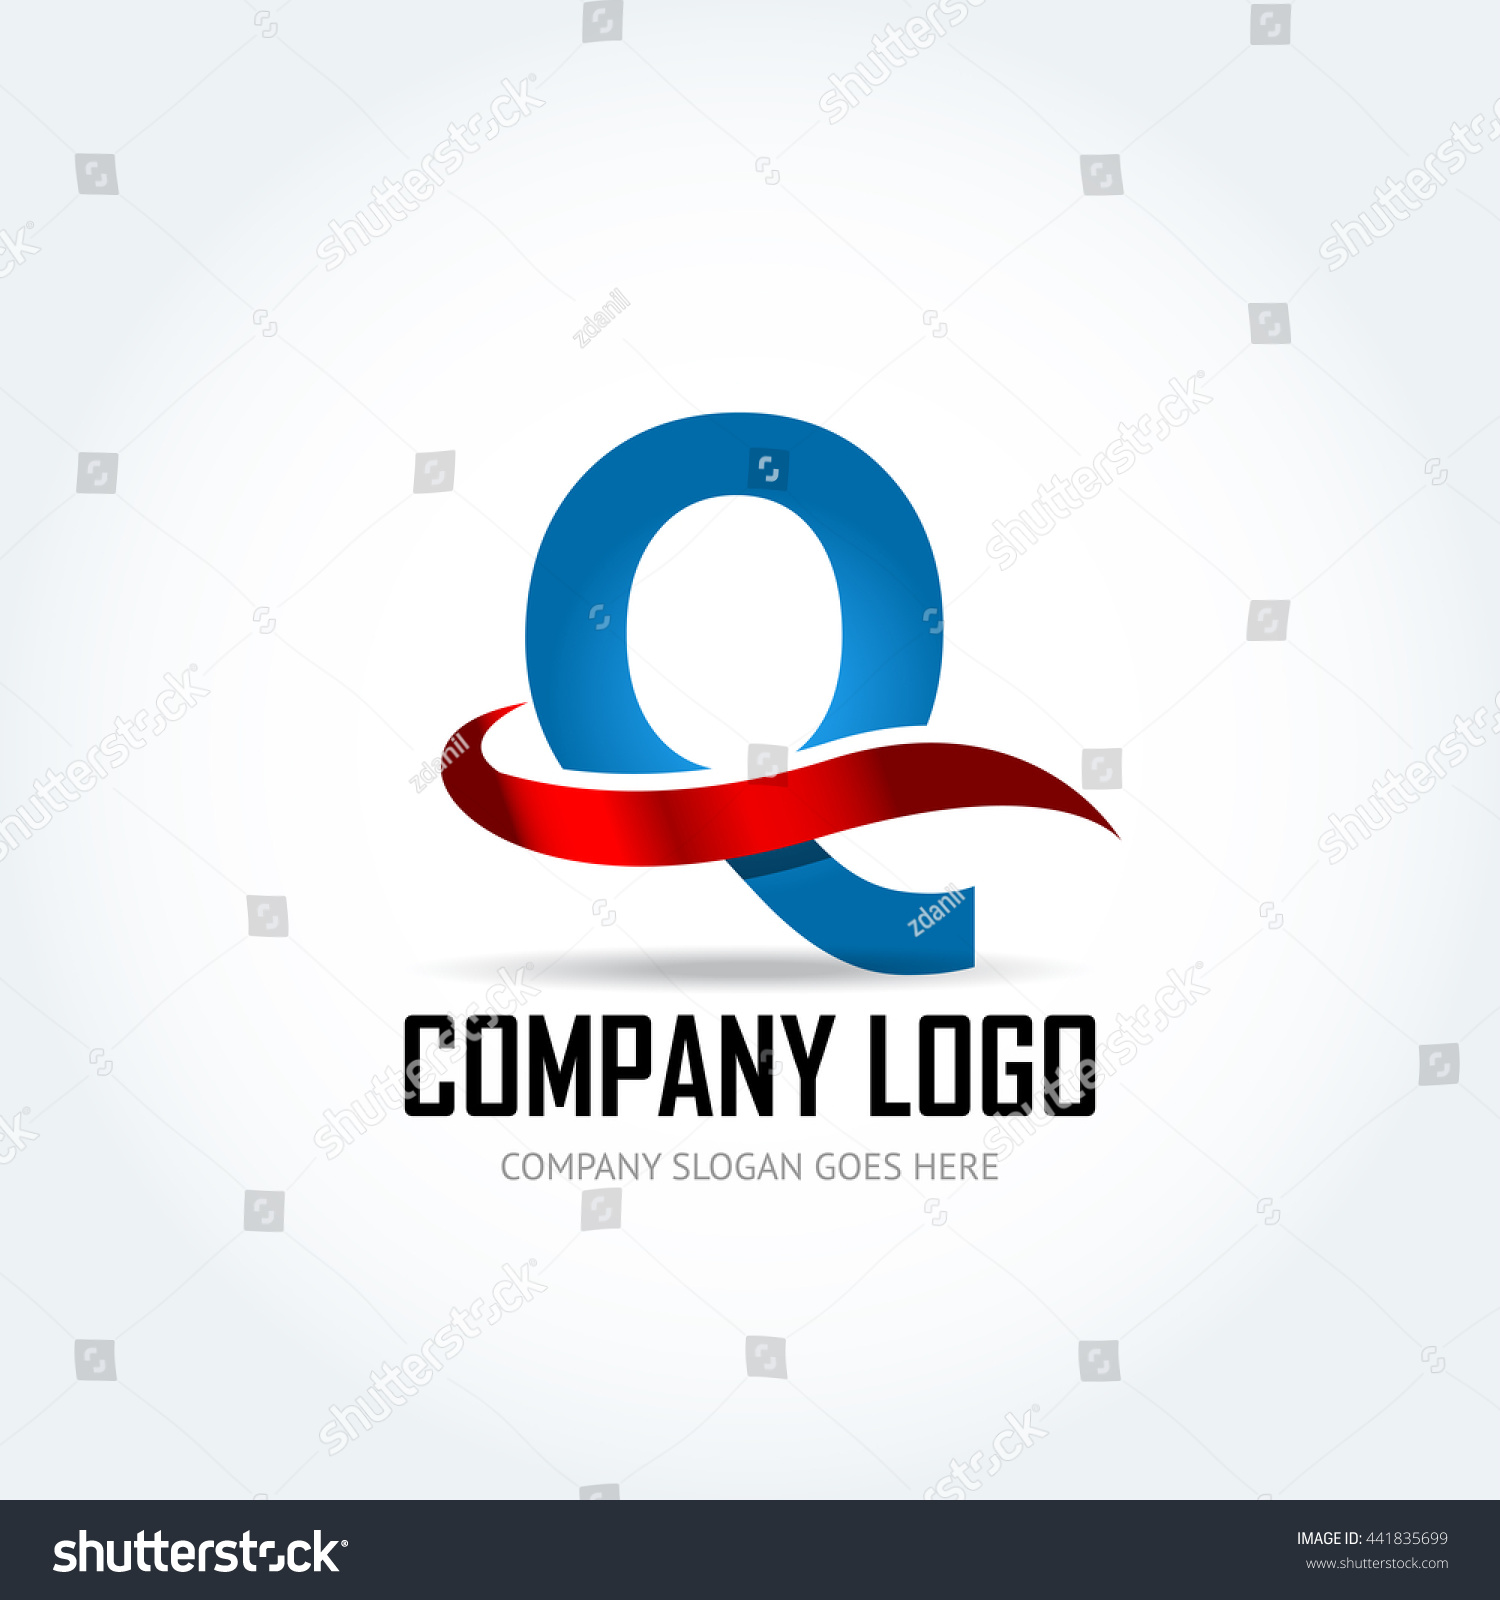 Blue Letter Q with red ribbon logo icon design template elements -  Illustration. Letter Q